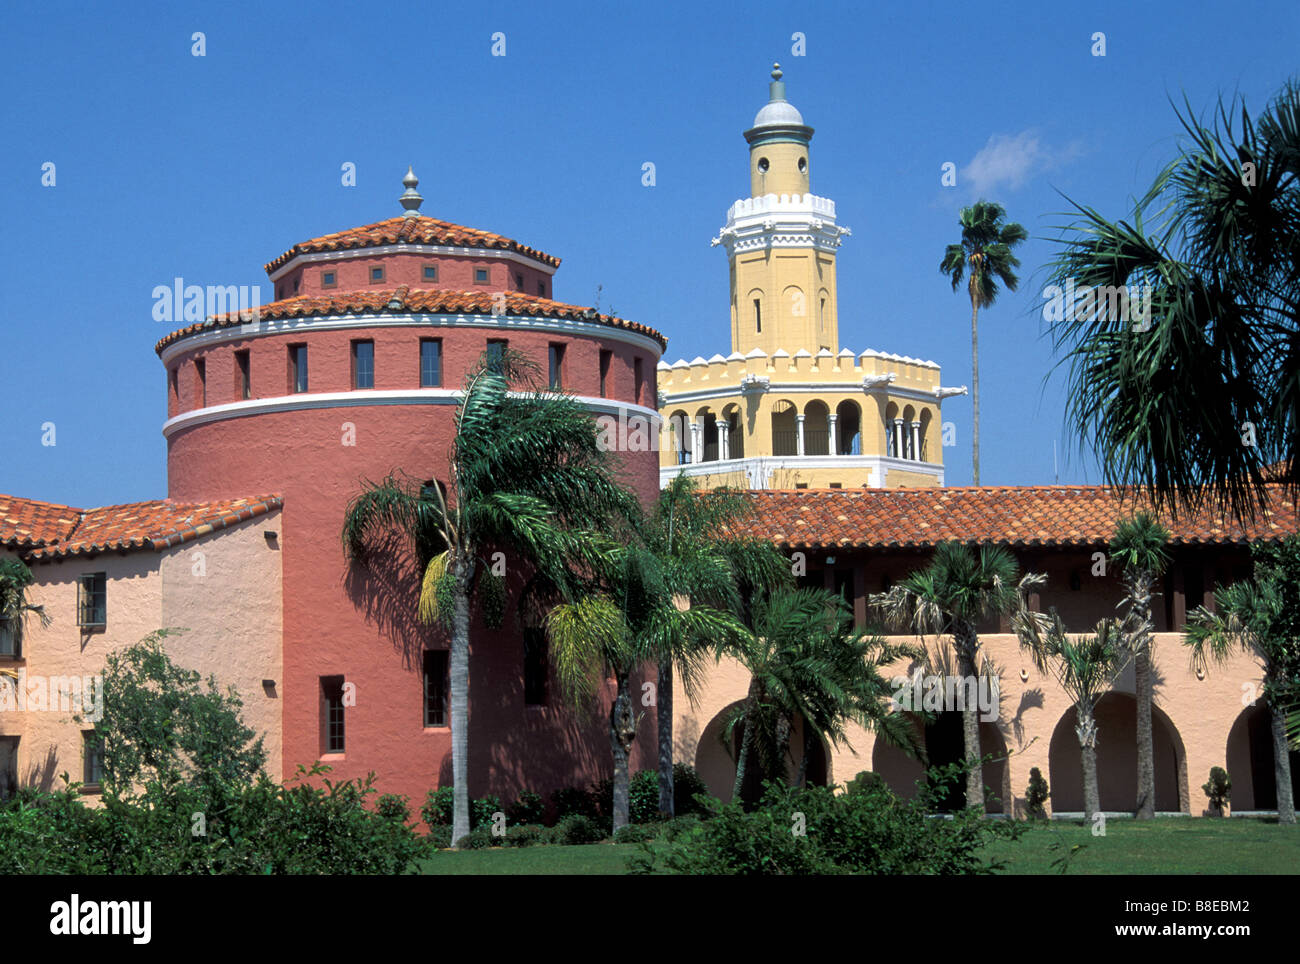 Stetson University College Of Law >> Stetson University College Of Law Gulfport Fl Usa Stock